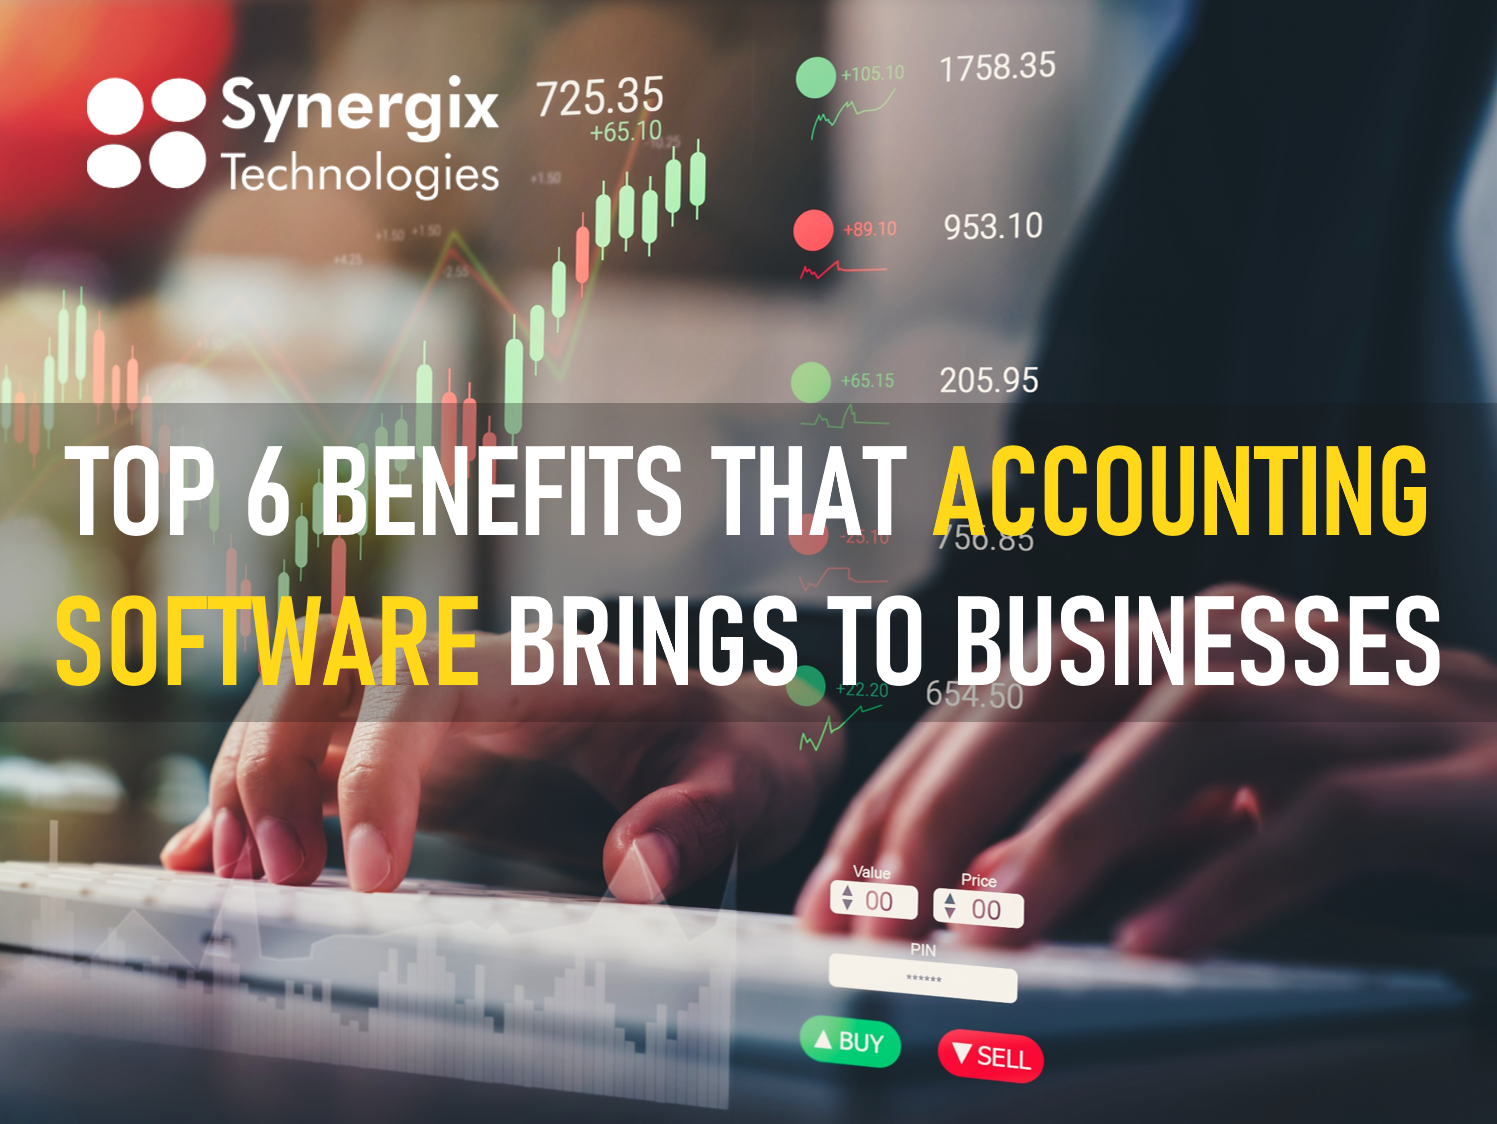 Top 6 benefits that Accounting software brings to businesses